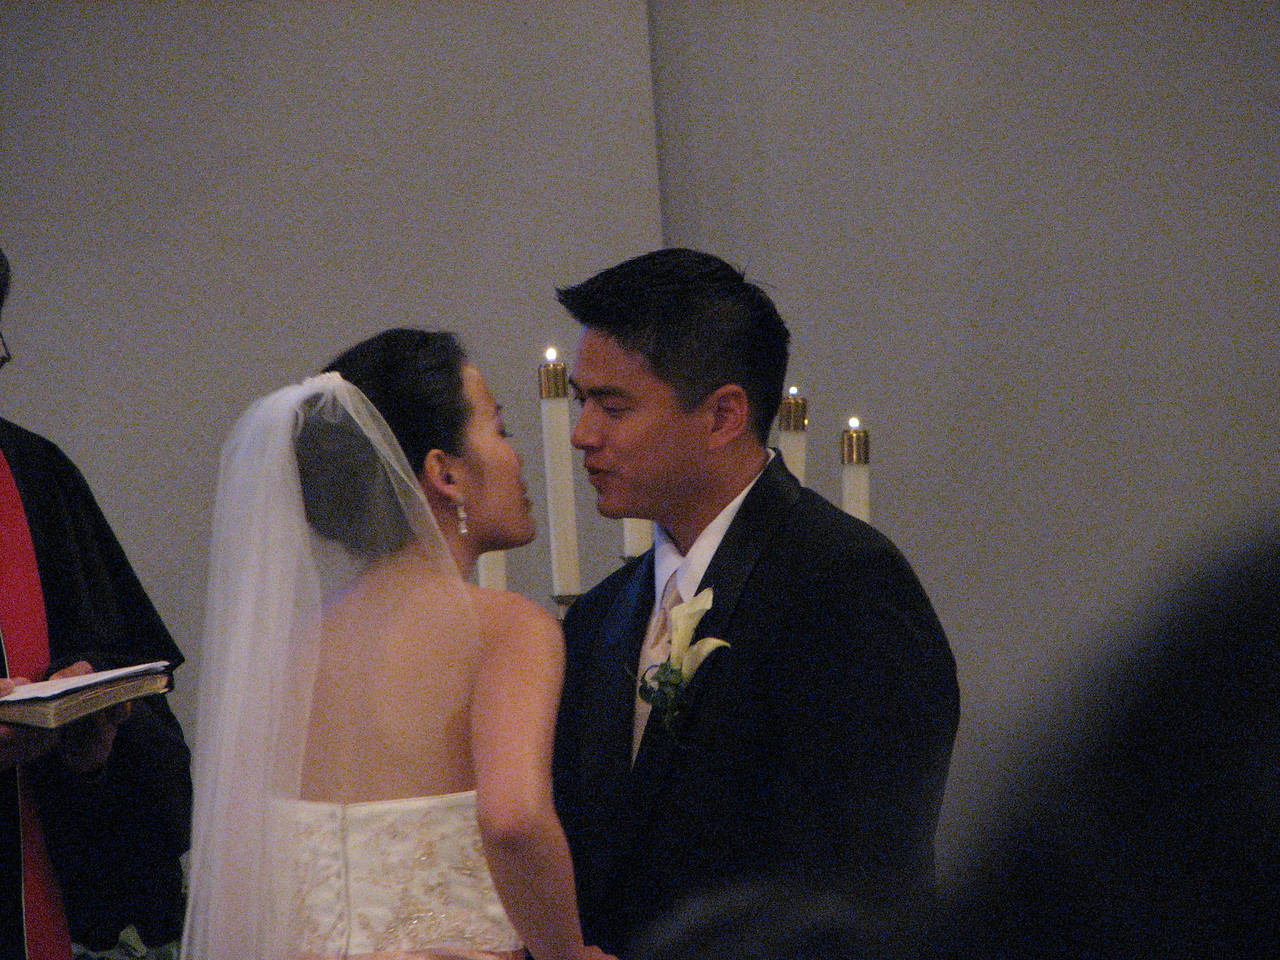 2007 06 09 Sat - The kiss after